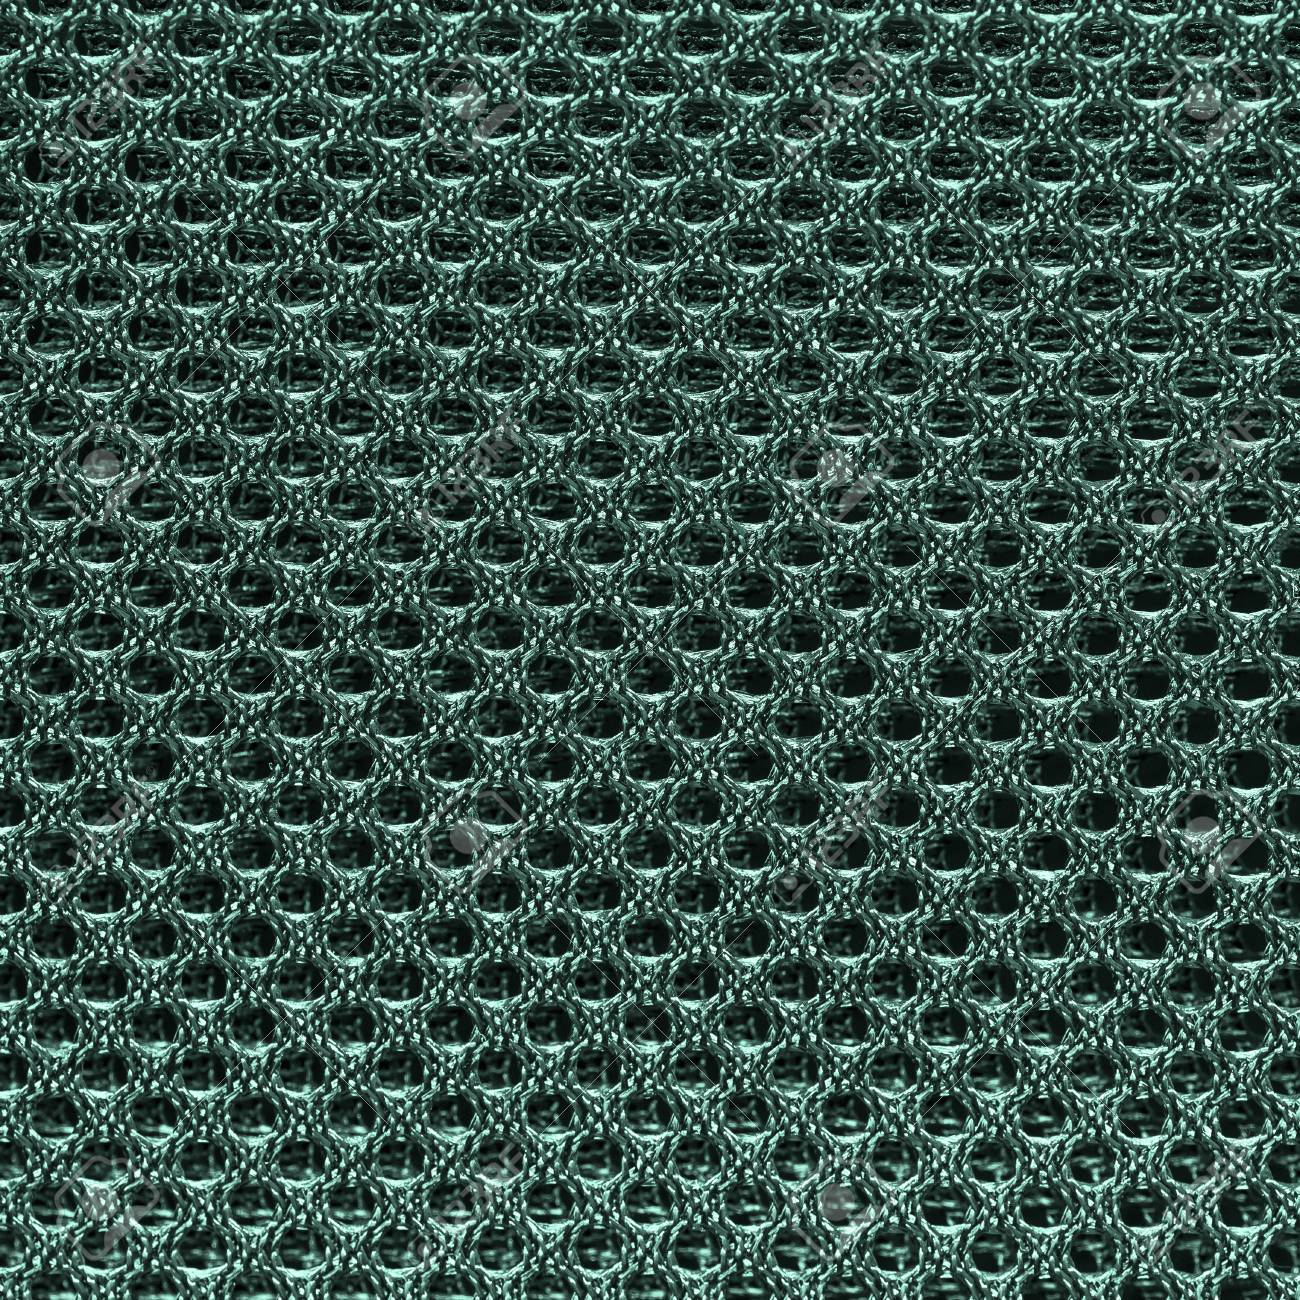 Fabric Texture Or Background Nylon For Design With Copy Space